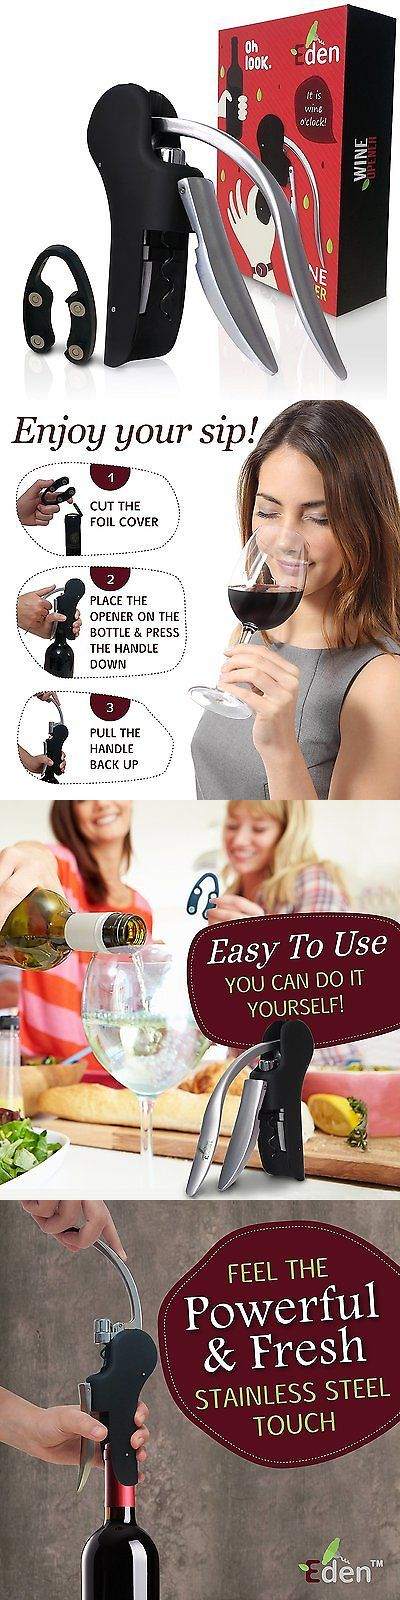 Corkscrews and Openers 20688: Screwpull Wine Opener, Rabbit Style, Effective Vertical Corkscrew With Foil By -> BUY IT NOW ONLY: $53.42 on eBay!